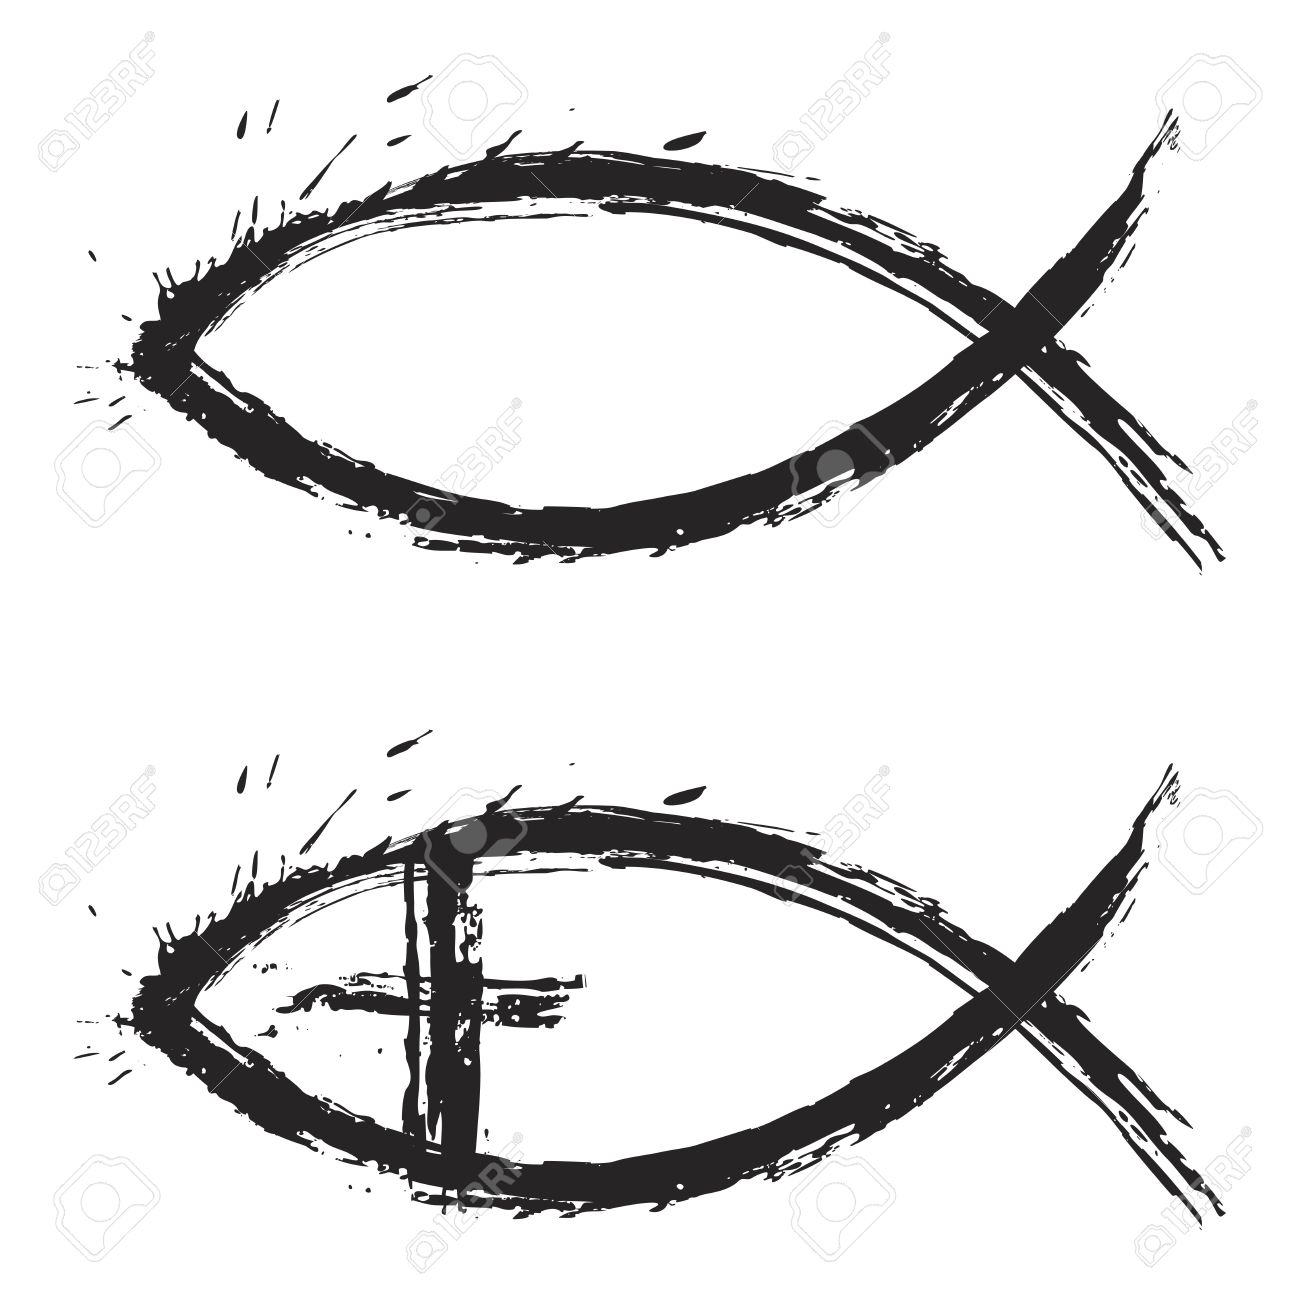 Christian religion symbol fish created in grunge style Stock Vector - 10129405